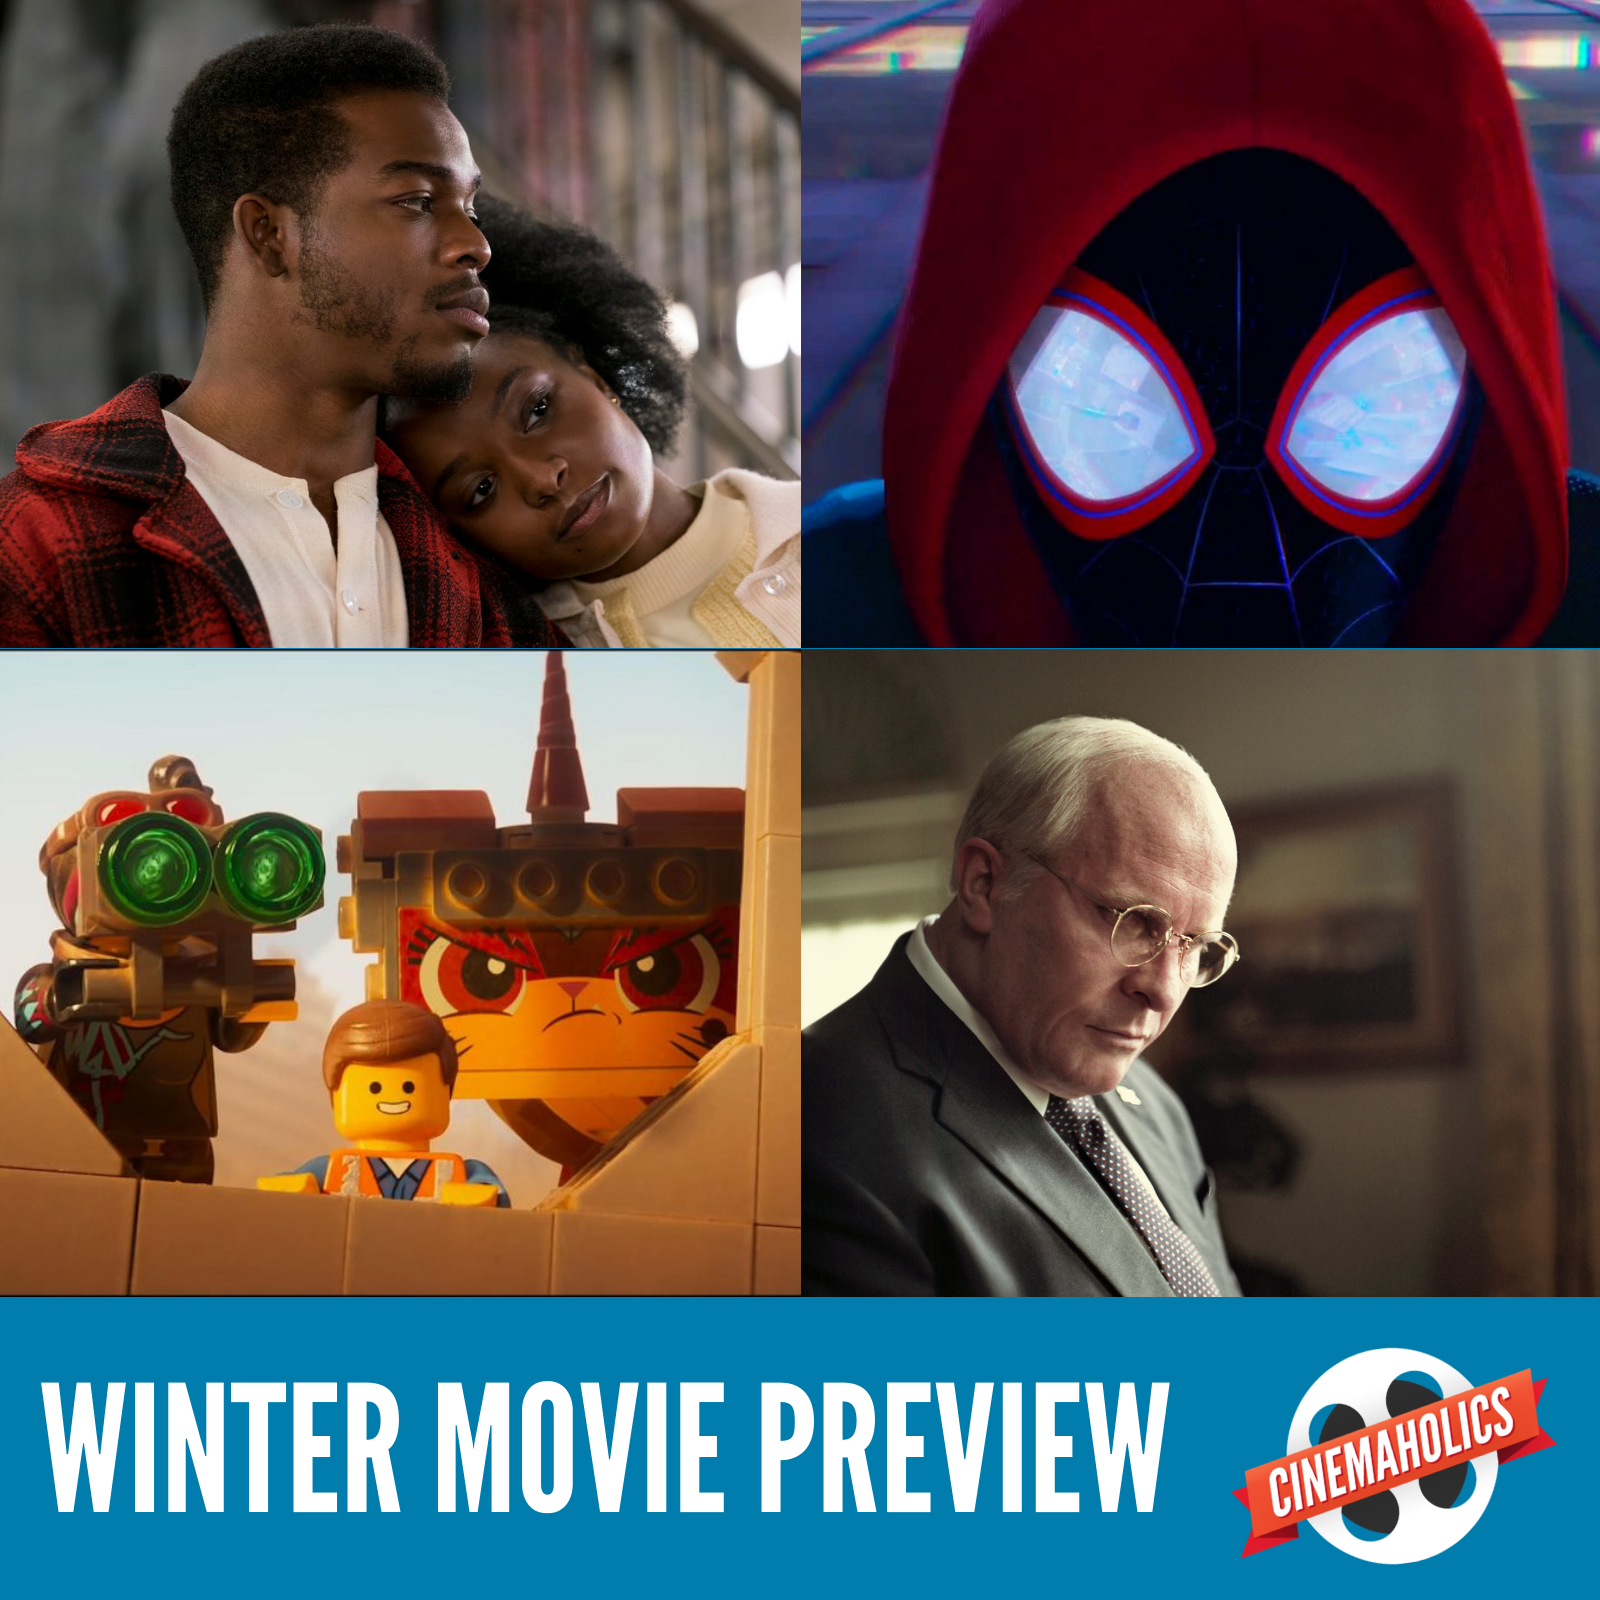 winter movie preview